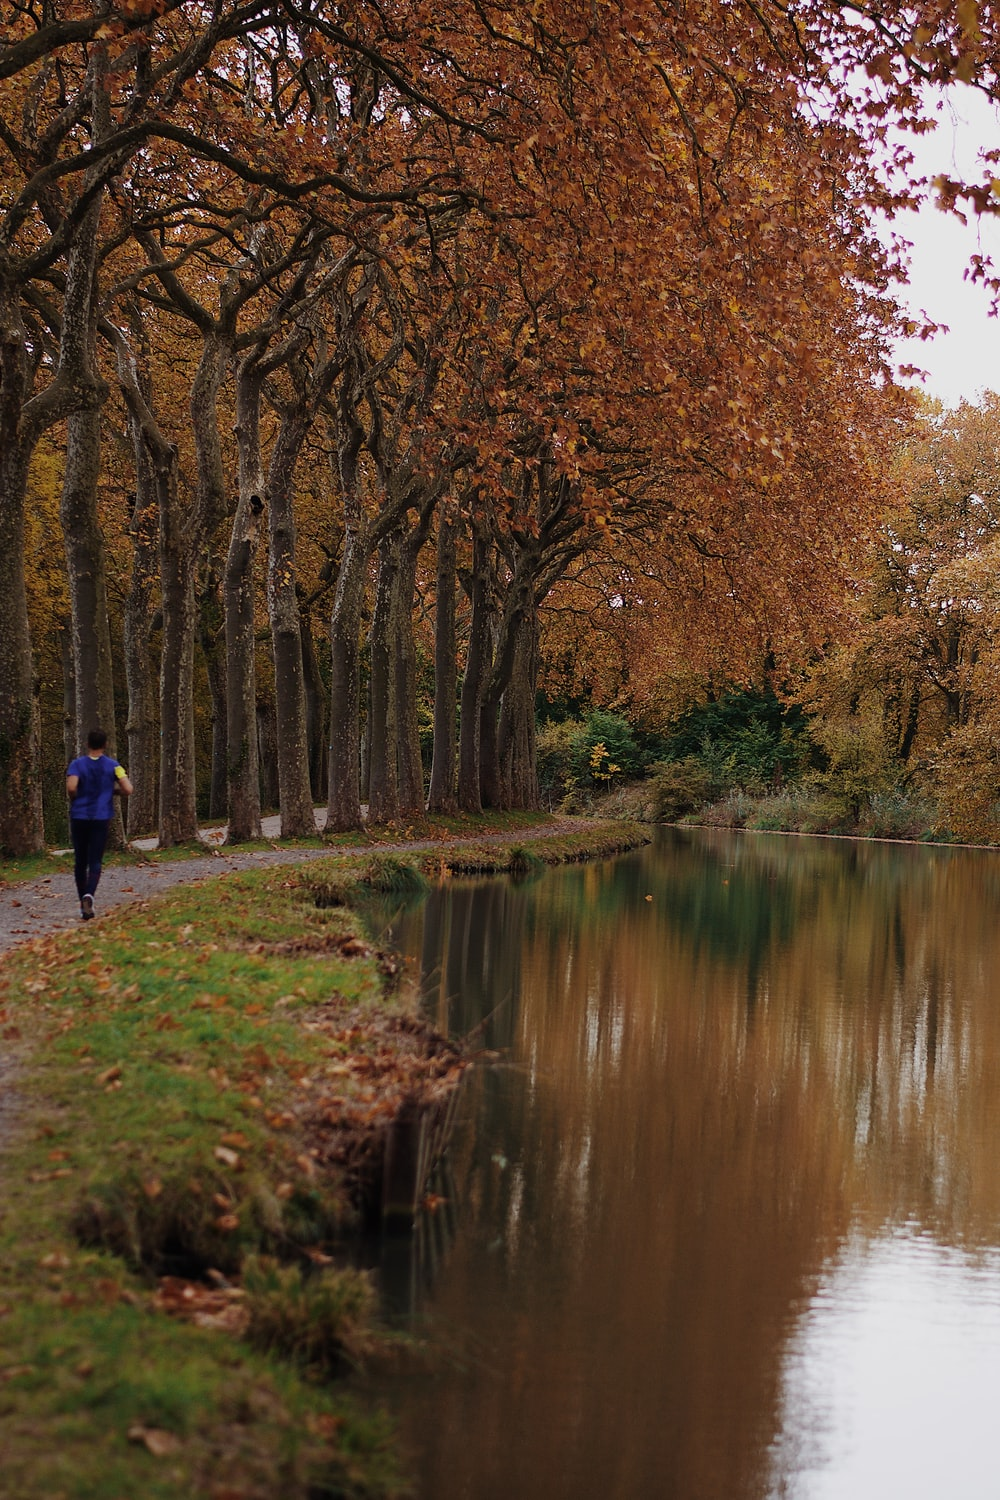 person in blue jacket walking on pathway near river during daytime